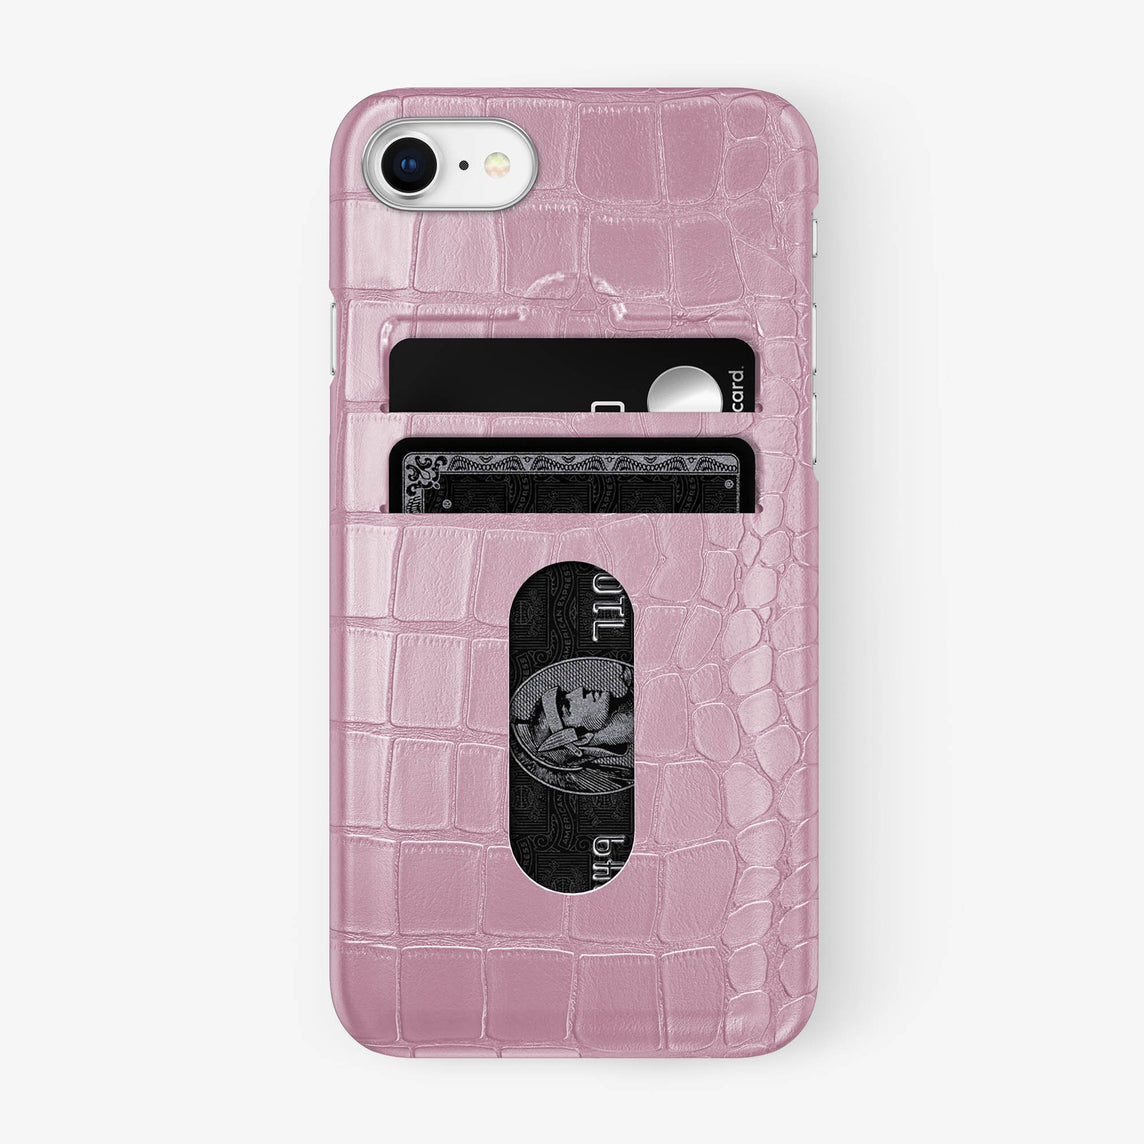 Alligator Card Holder Case iPhone 7/8 | Pink - Stainless Steel